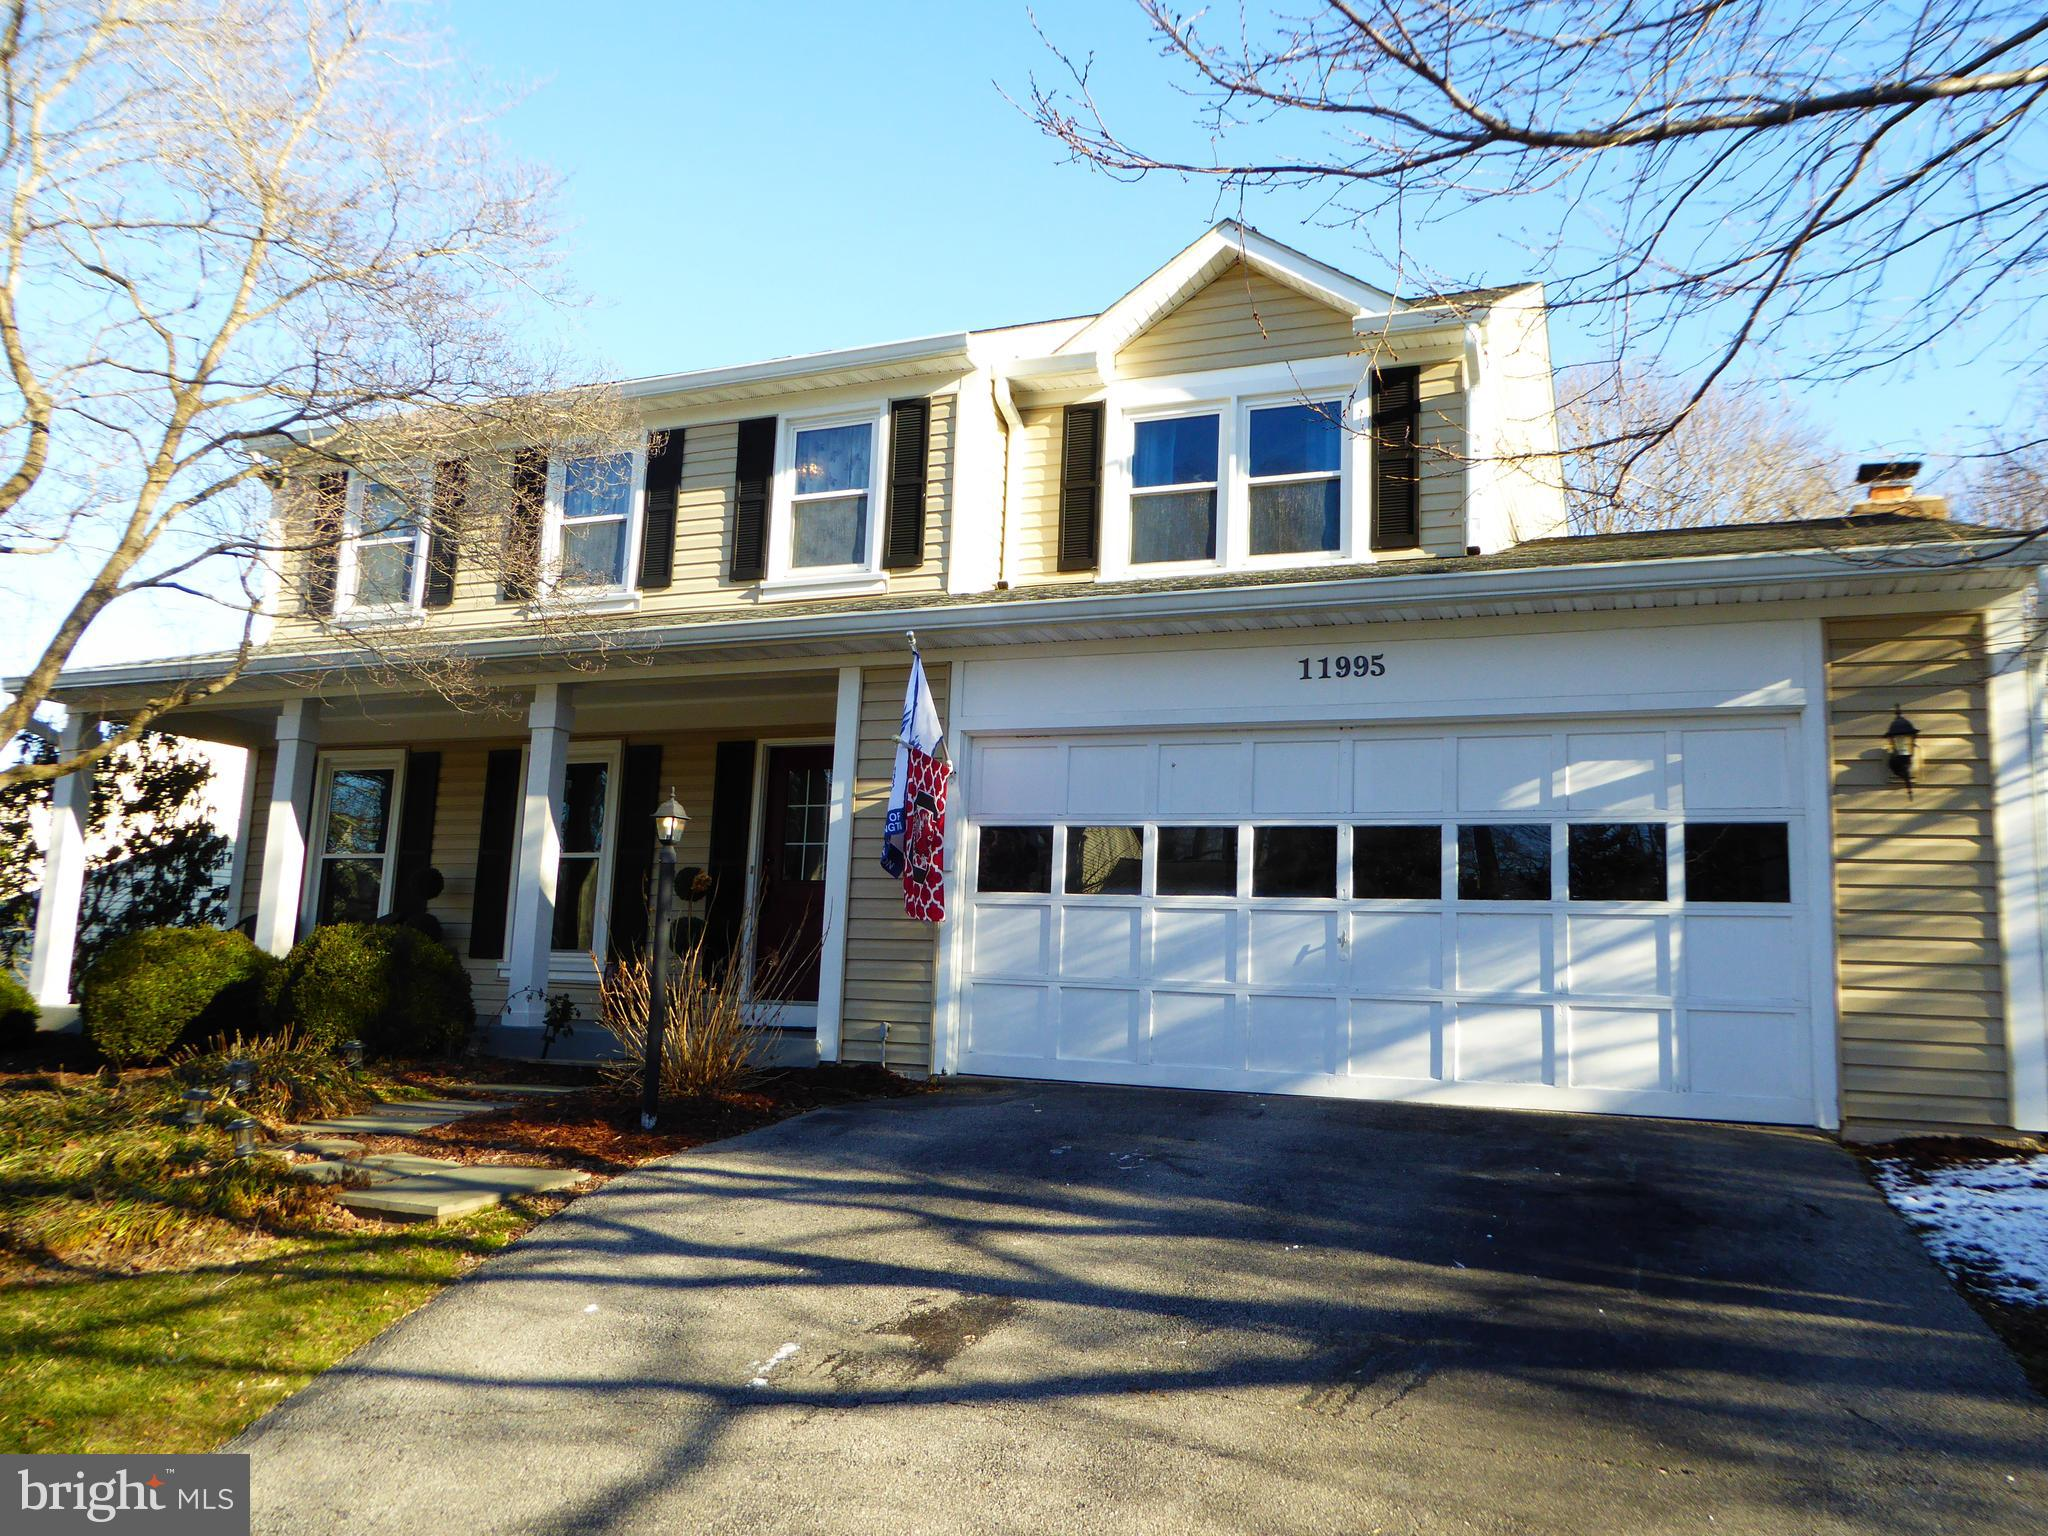 3 LEVELS OF PERFECTION:  FROM THE MOMENT YOU PULL UP TO THE FRONT YOU WILL KNOW YOU HAVE FOUND THE HOUSE OF YOUR DREAMS.  LARGE COMFY FRONT PORCH TO THE FULLY FENCED YARD WITH FIRE PIT, STAMPED CONCRETE PATIO AND A WALL OF WINDOWS IN THE REAR OF HOME.  INSIDE IS PURE PERFECTION W HW FLOORS ON MAIN AND UL AND SMARTLY PAINTED WITH ALL THE PIZZAZZ ONE COULD WANT.  BEAUTIFUL UPGRADED KIT W ELEGANT QUARTZ COUNTERS & BACK SPLASH WHICH COMPLIMENTS PERFECTLY..NEW CABINETS, NEW APPLIANCES, NEW WINDOWS, LOWER LEVEL W FULLY EQUIPPED BAR W GRANITE COUNTER, GAME ROOM W DOUBLE DOORS, AND AN AREA MADE FOR ENTERTAINING.   ROOF, GUTTERS AND SIDING WAS REPLACED IN  2013, HVAC REPLACED 2010, KITCHEN 2018, FABULOUS NEW WINDOWS REPLACED IN